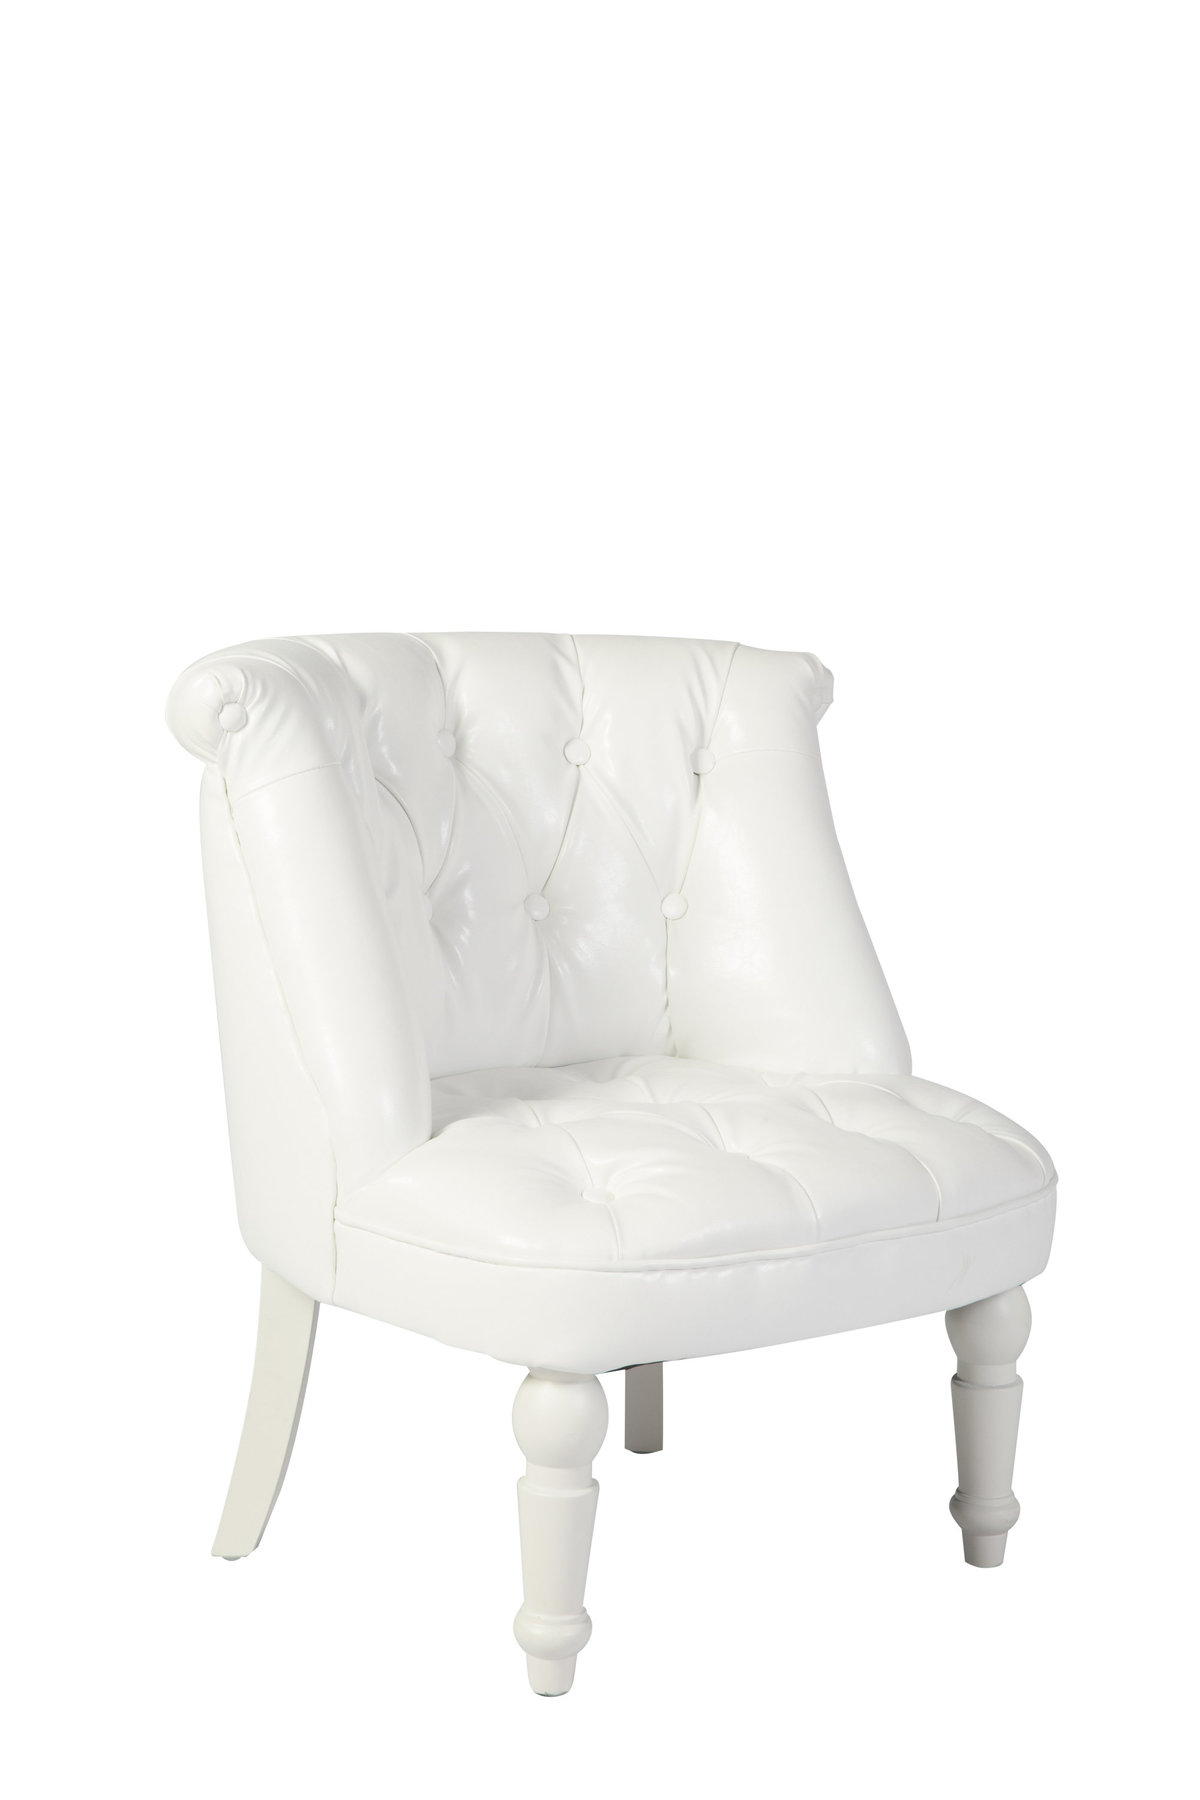 Siena White Leather Club Chair